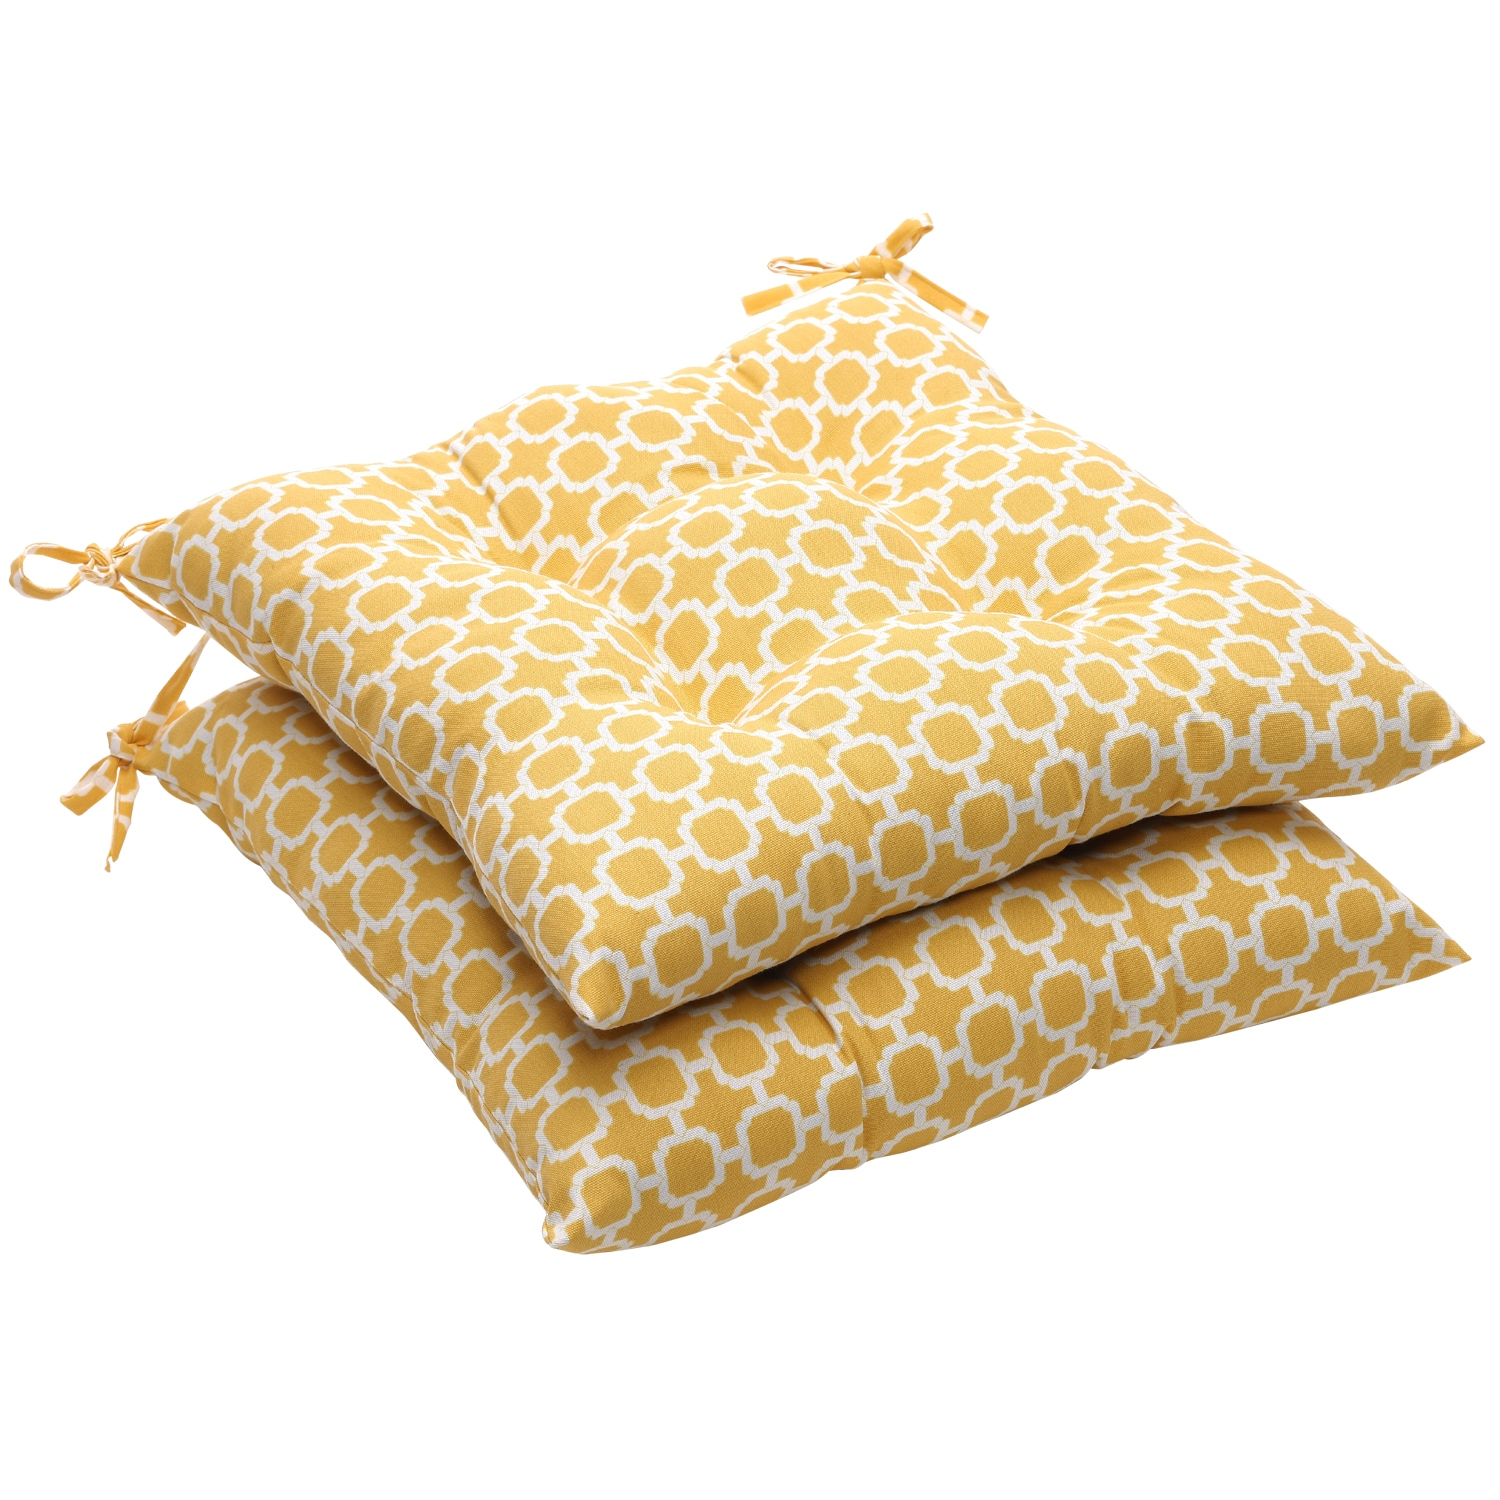 Yellow White Geometric Outdoor Tufted Seat Cushions Set